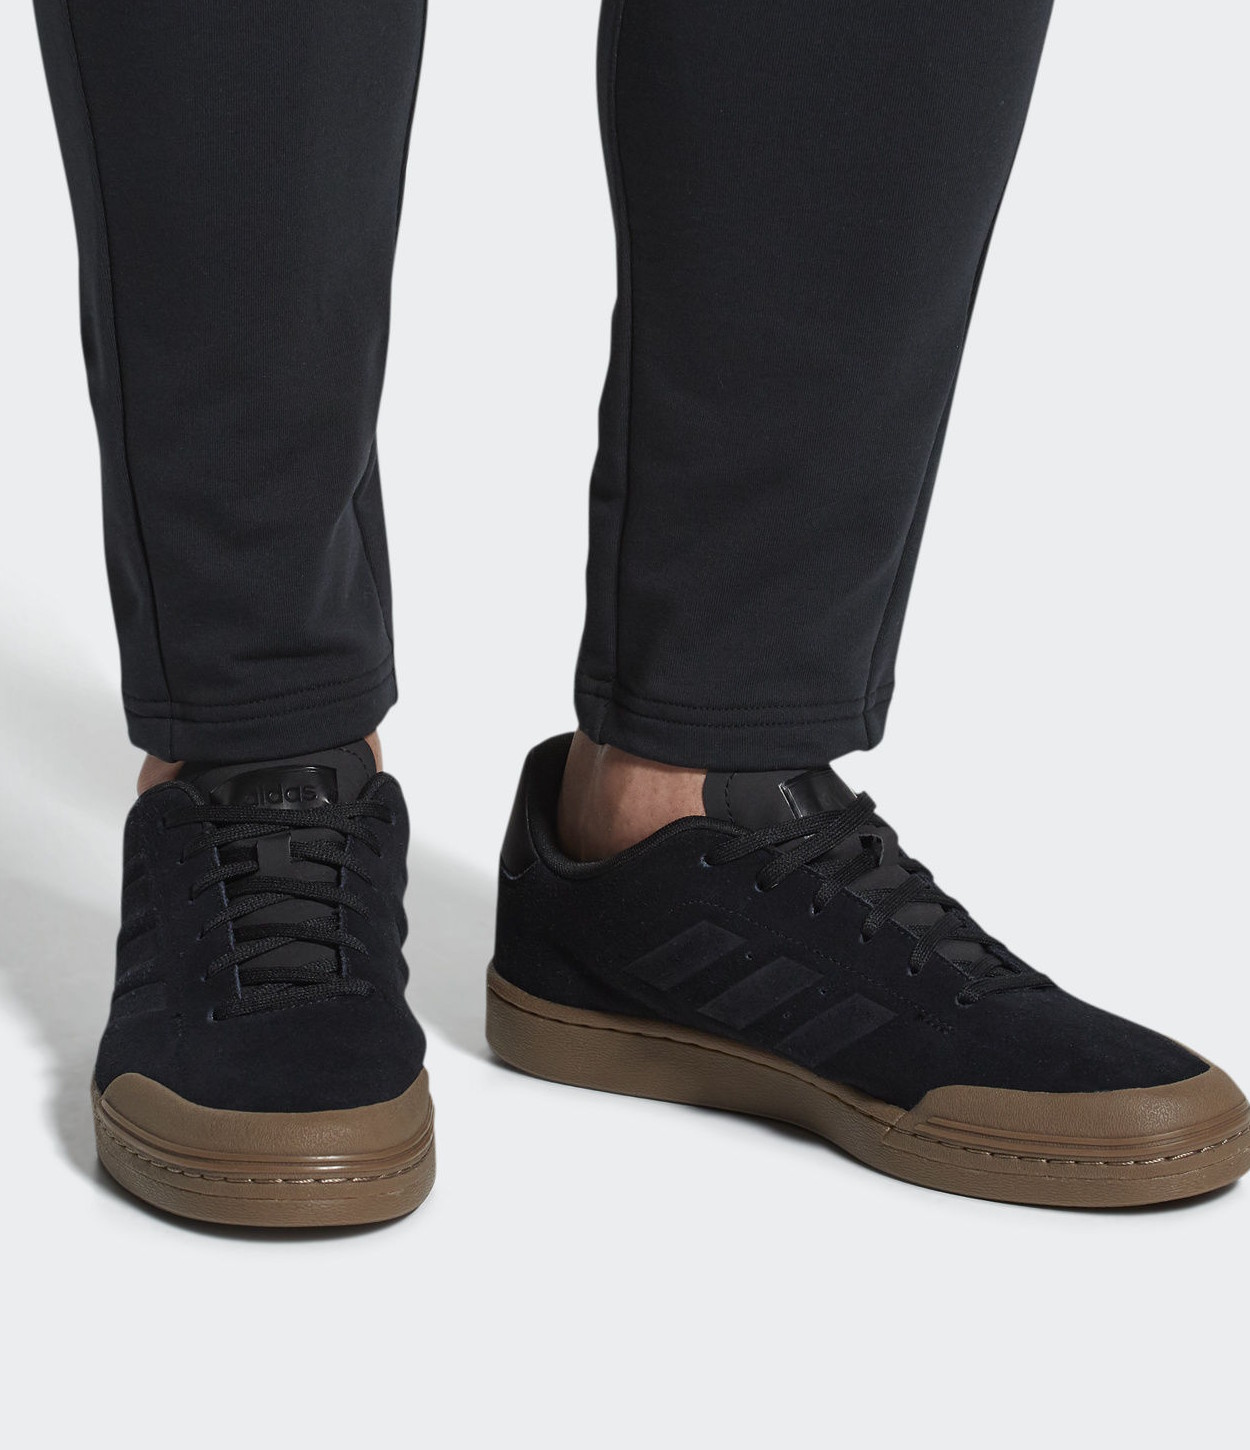 Adidas shoes Sneakers Sportive COURT70S black Sportswear Lifestyle 2018 19